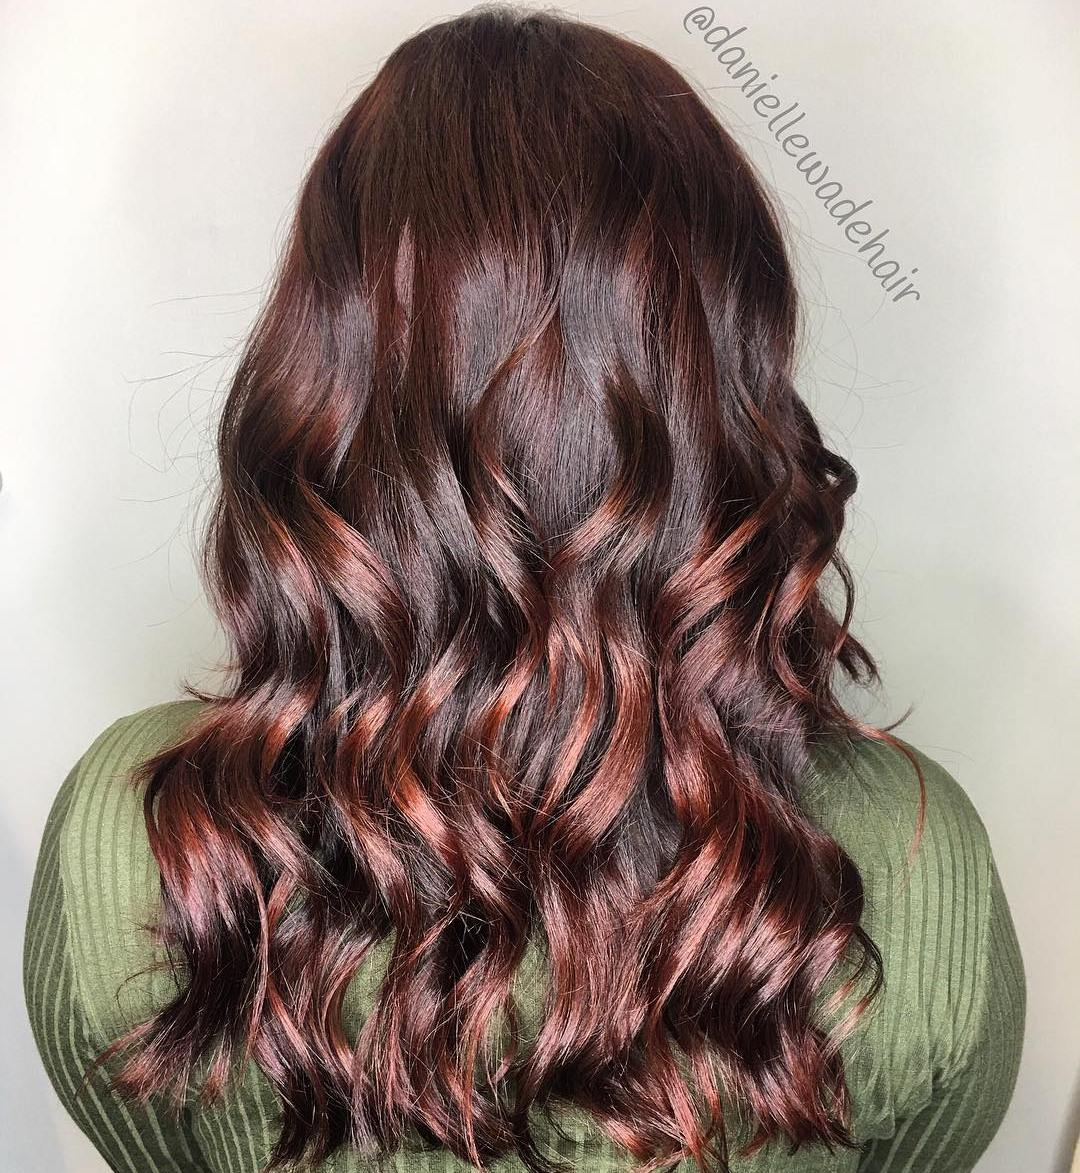 Balayage Hair: 15 Beautiful Highlights for Blonde, Red ...